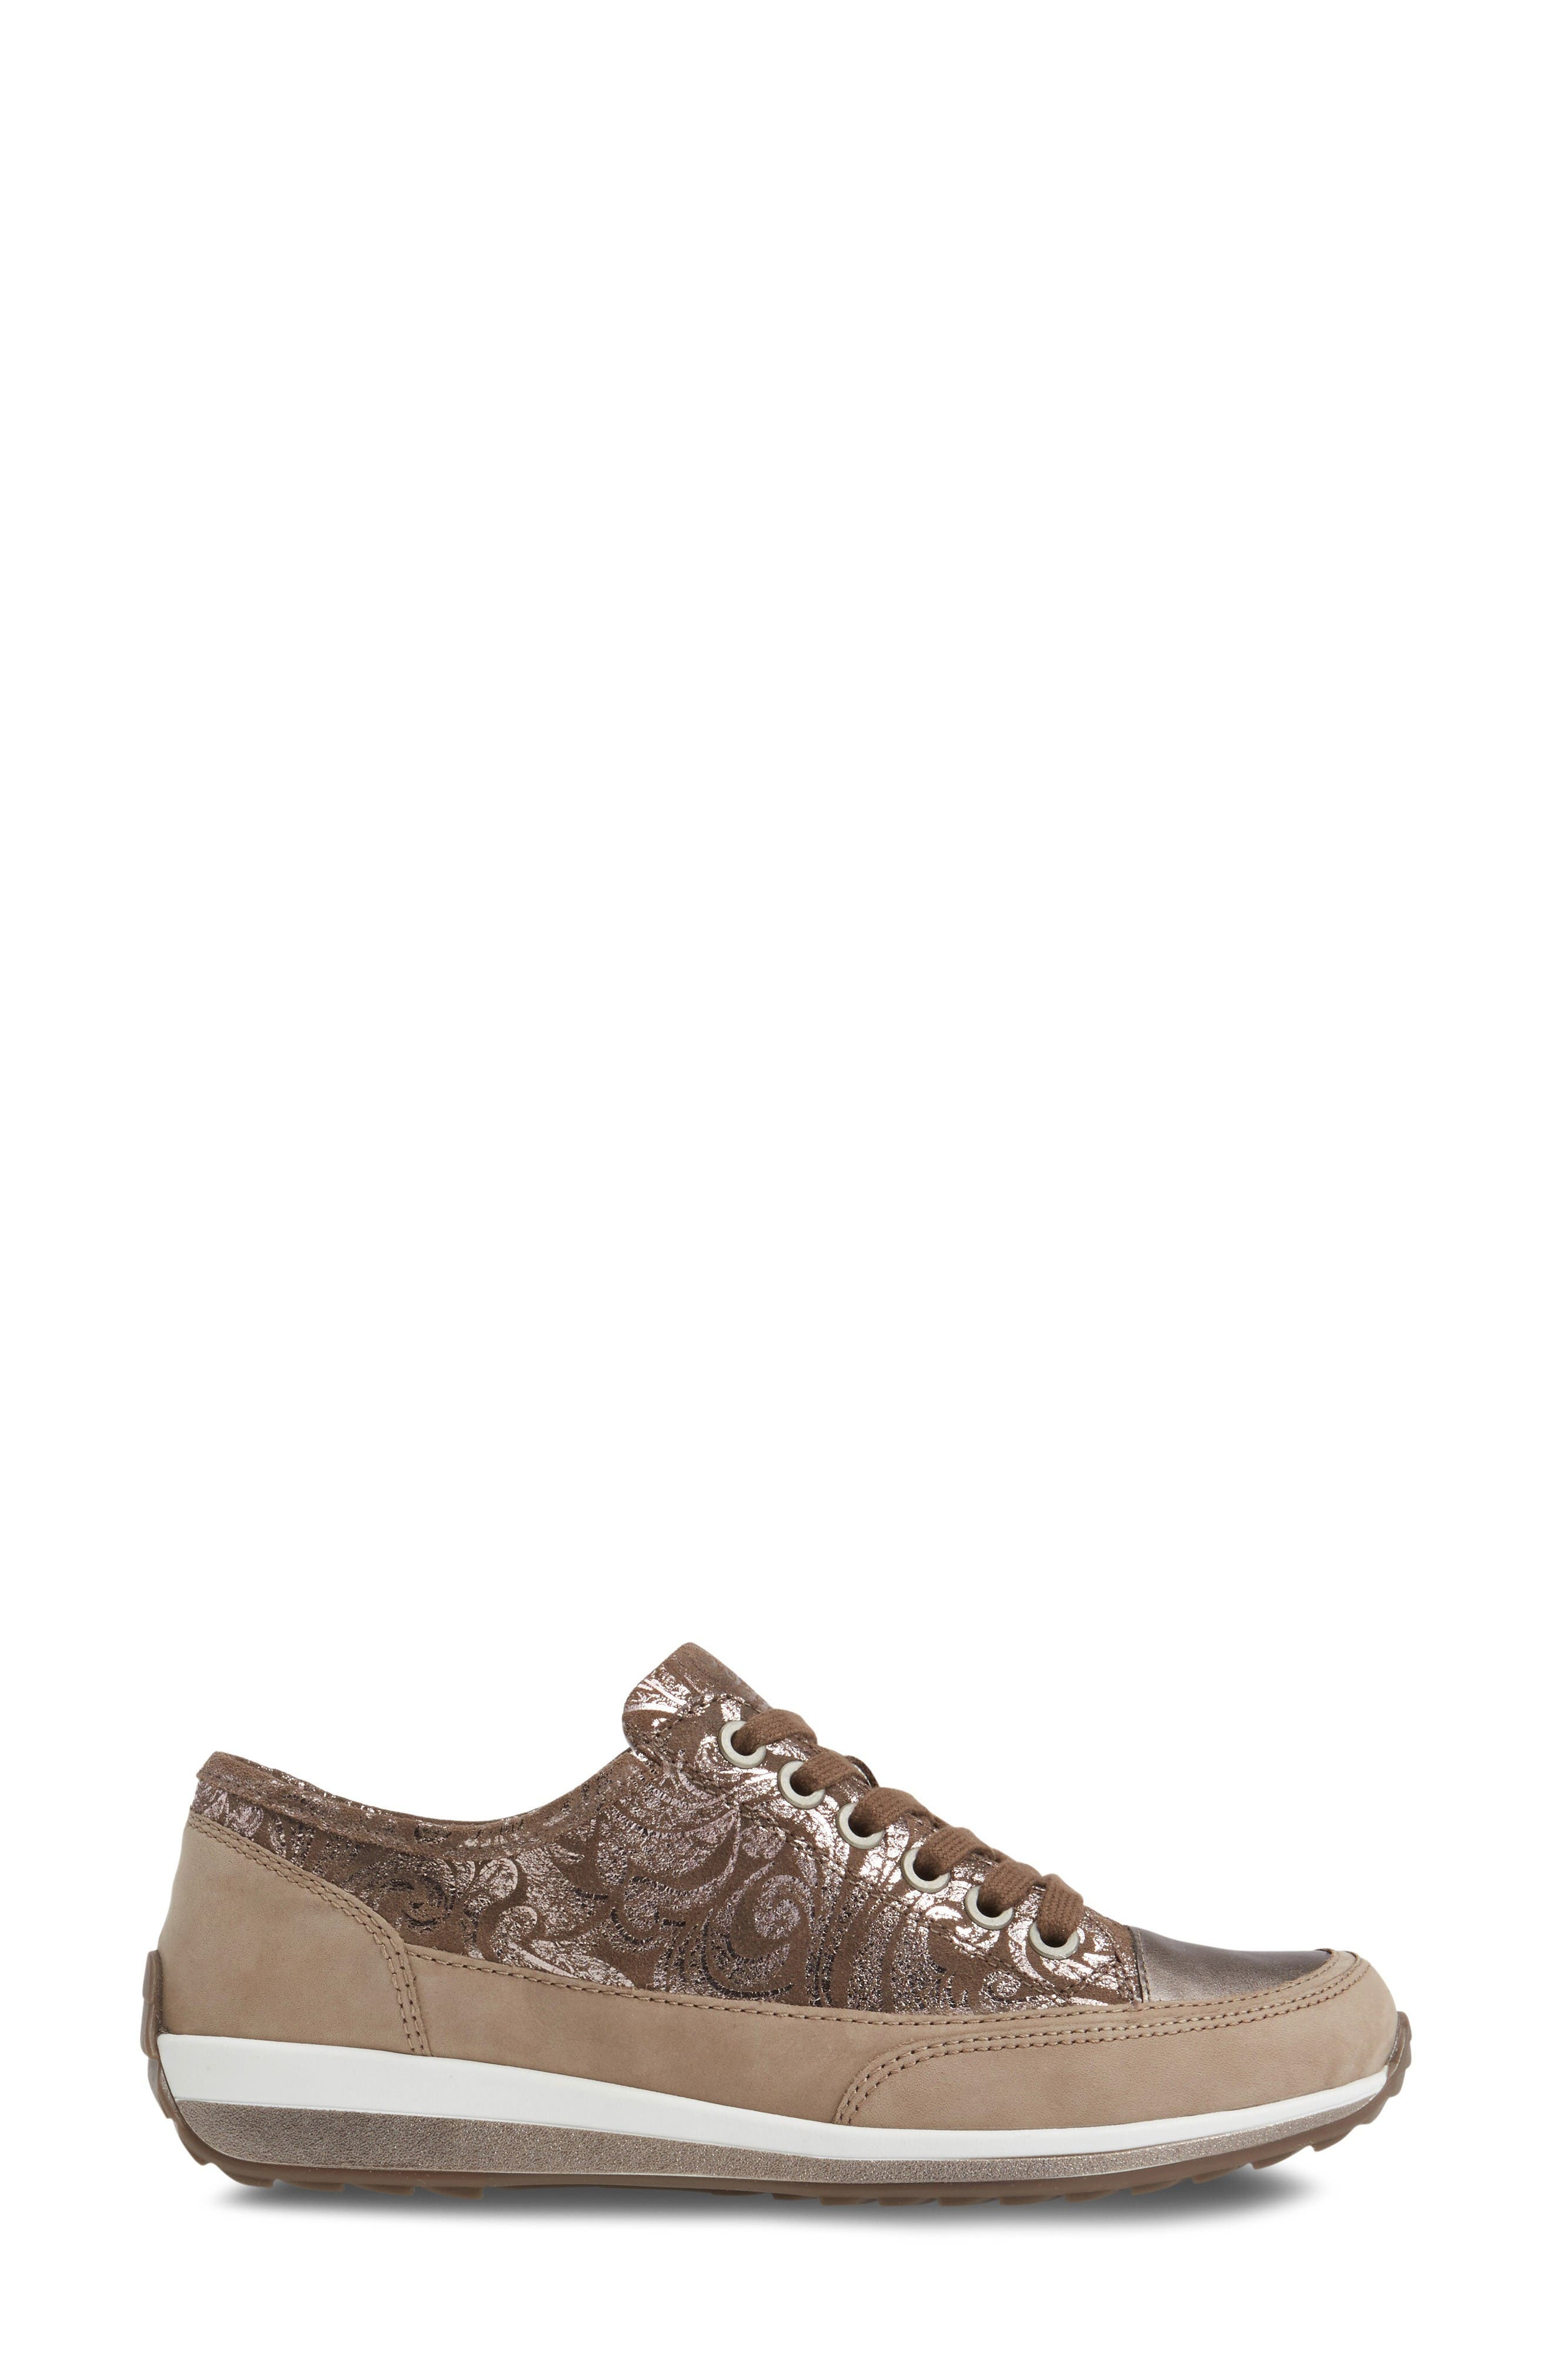 Hermione Sneaker,                             Alternate thumbnail 3, color,                             Taupe Combo Leather